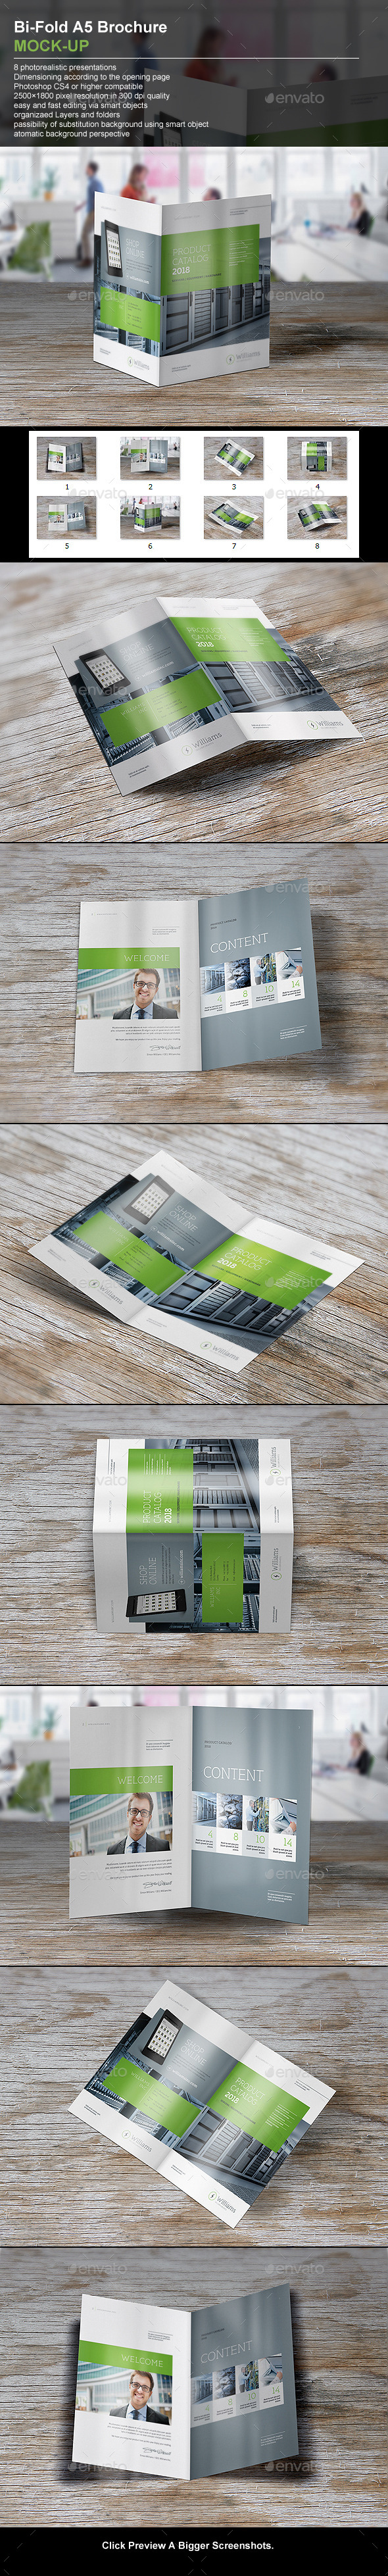 GraphicRiver Bi-Fold A5 Brochure 11018653